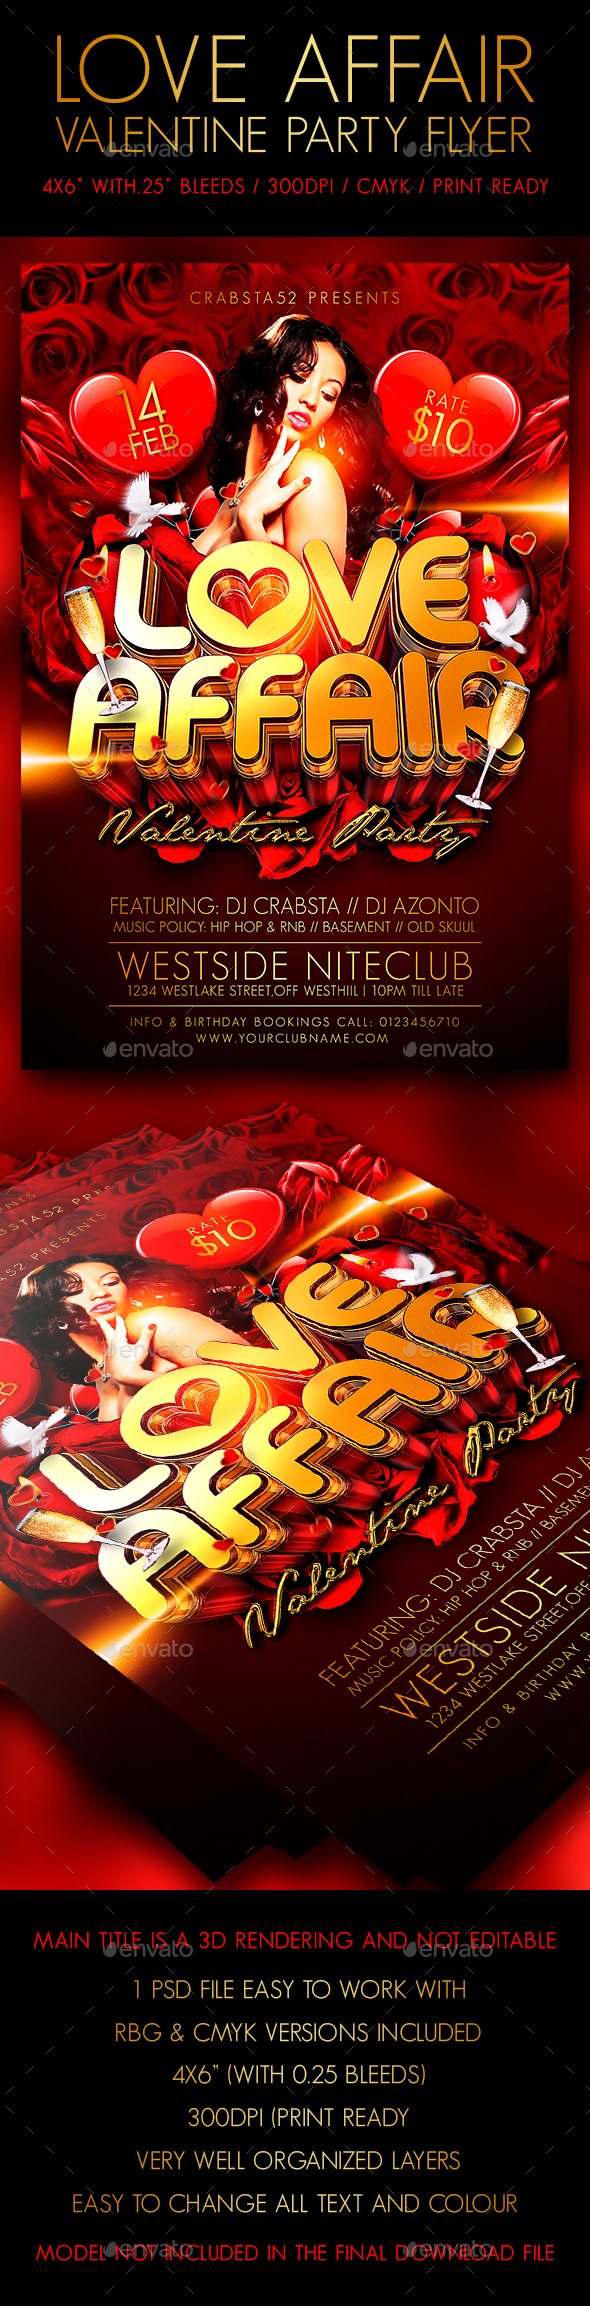 Love Affair Valentine Party Flyer - Clubs & Parties Events